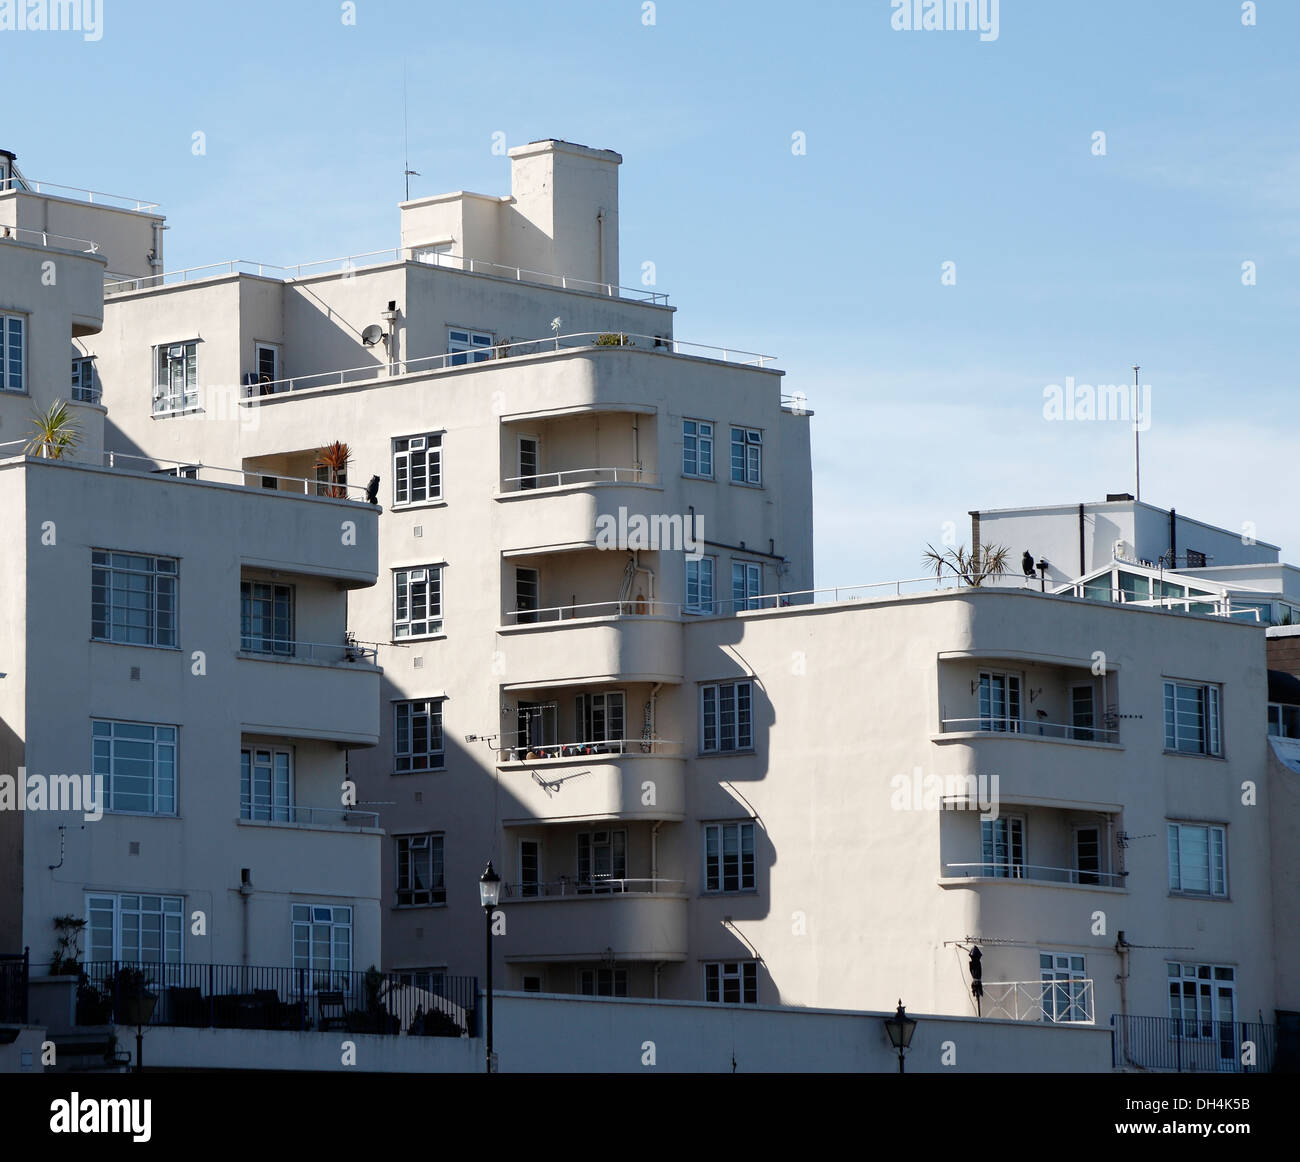 1930s style seafront flats Cowes, Isle of Wight, Hampshire, England - Stock Image